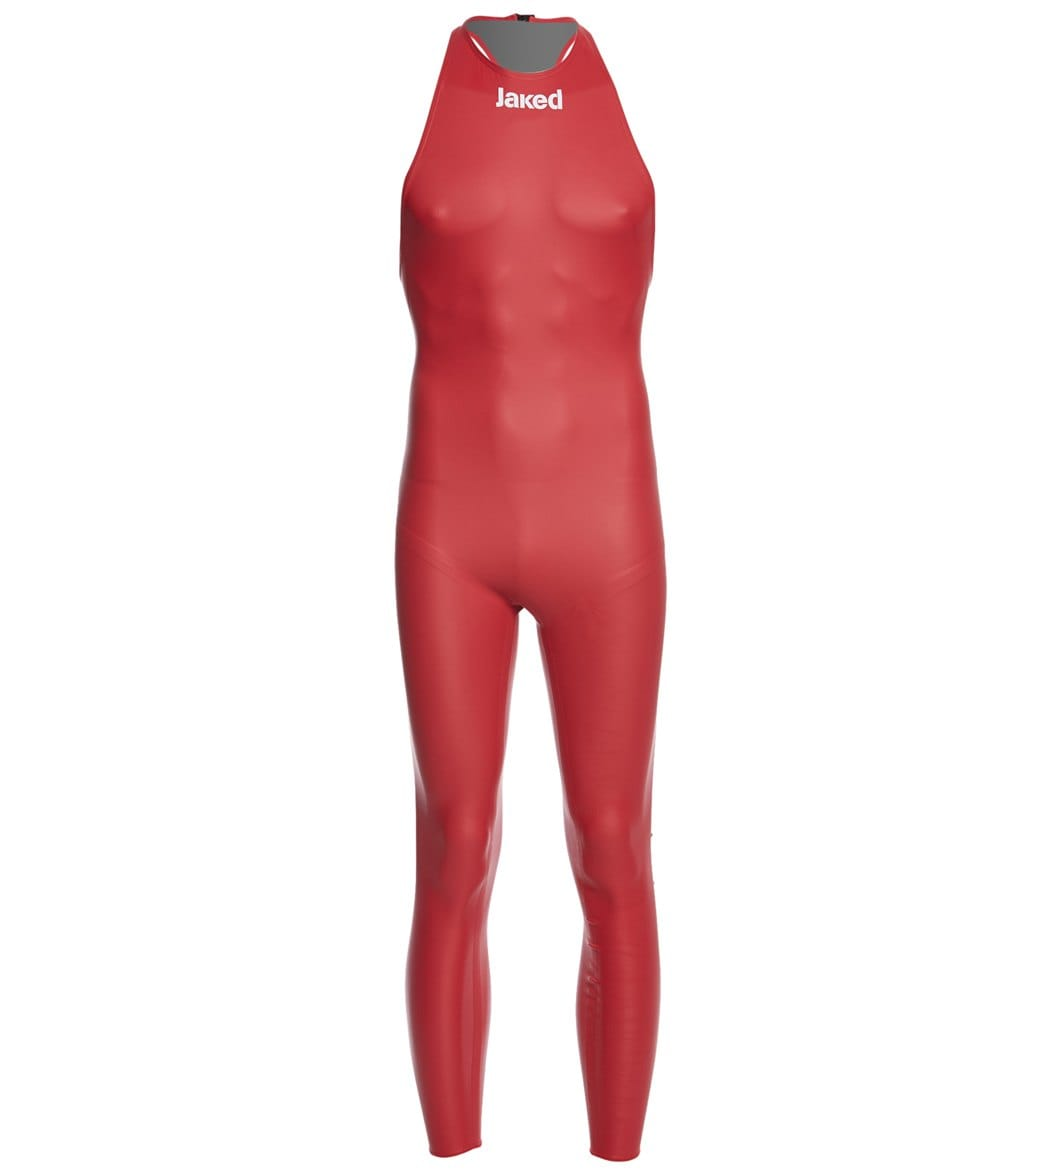 d7dadae36359 Jaked Men s Reloaded Full Body Tech Suit Swimsuit